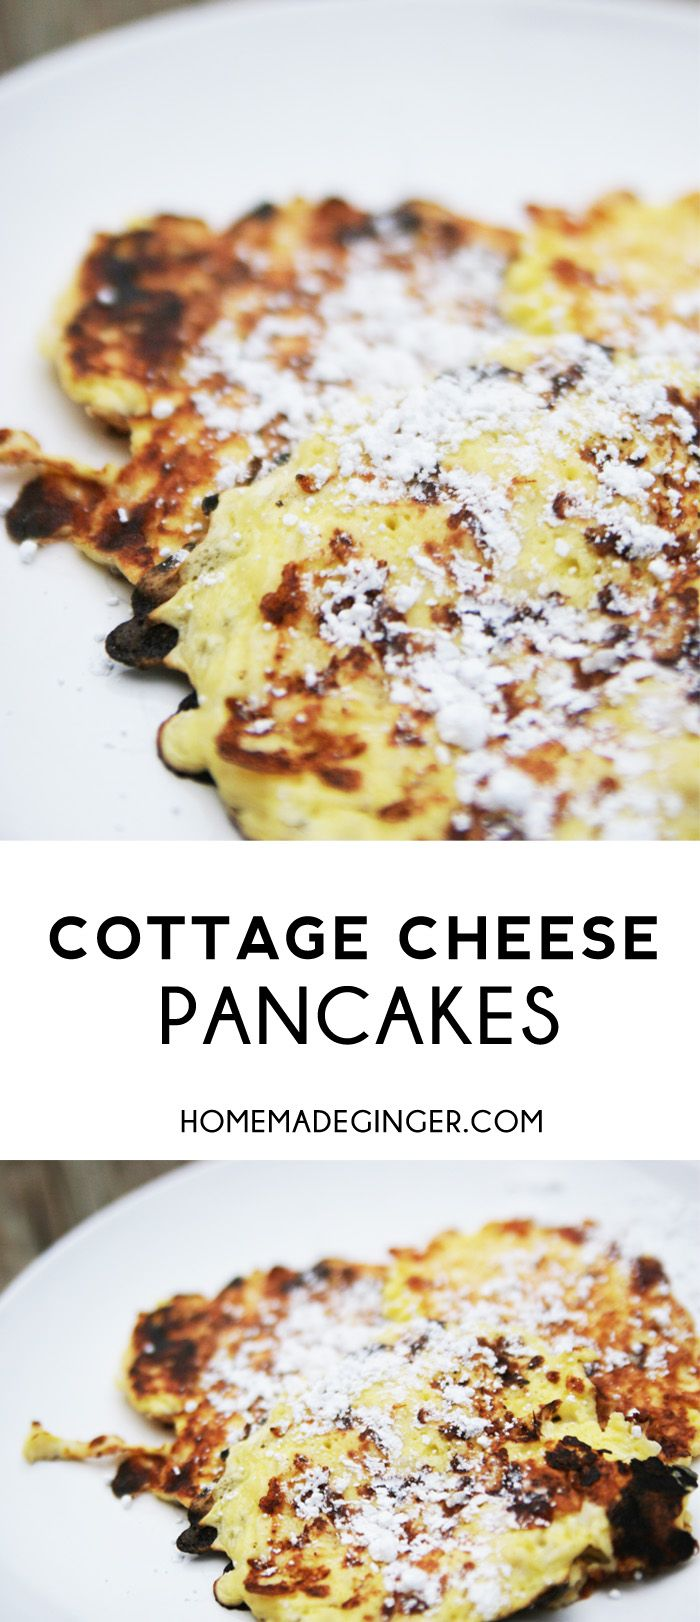 These cottage cheese pancakes are the absolute BEST pancake recipe you will ever make! You won't need another pancake recipe after trying these!